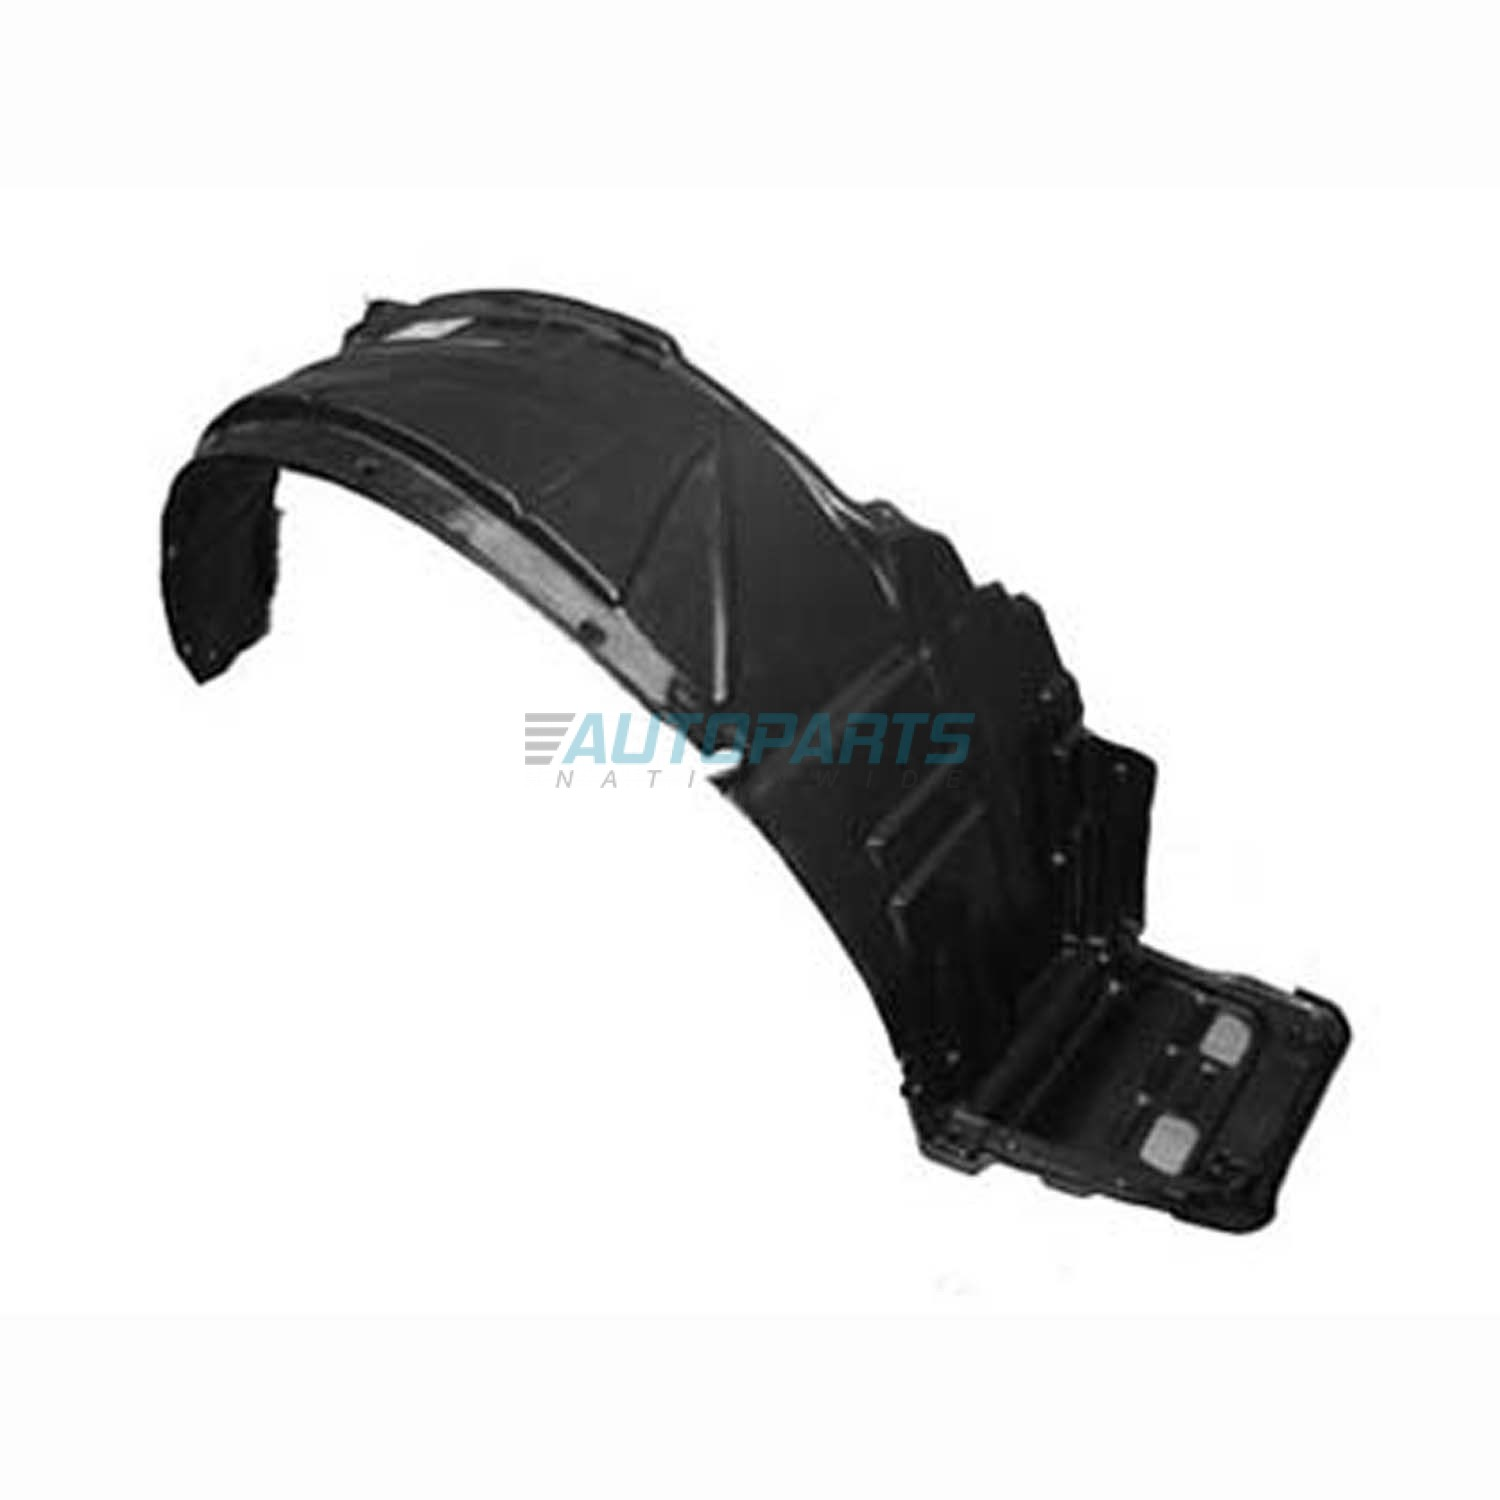 NEW 2005-06 FITS ACURA RSX FRONT RIGHT SIDE SPLASH SHIELD